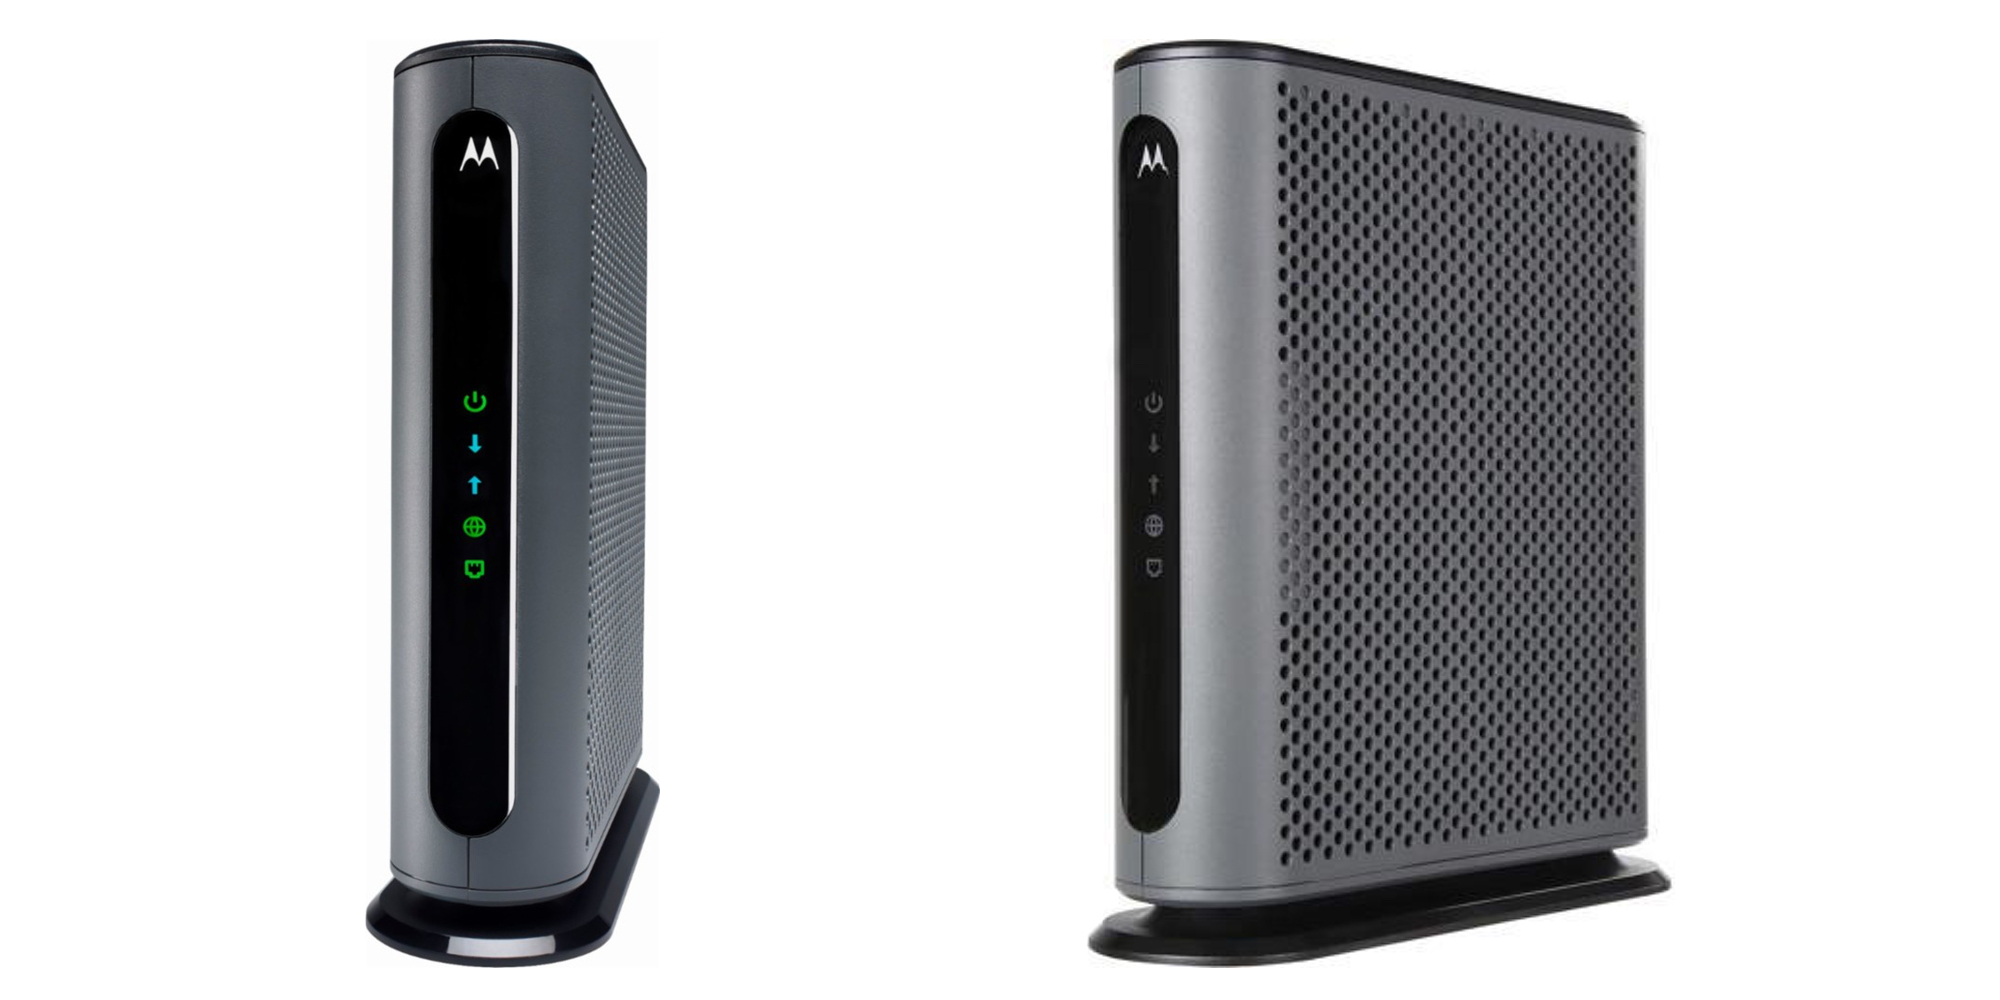 Motorola's DOCSIS 3.0 Cable Modem brings 1,000Mbps speeds to your network: $70 (Reg. $85)